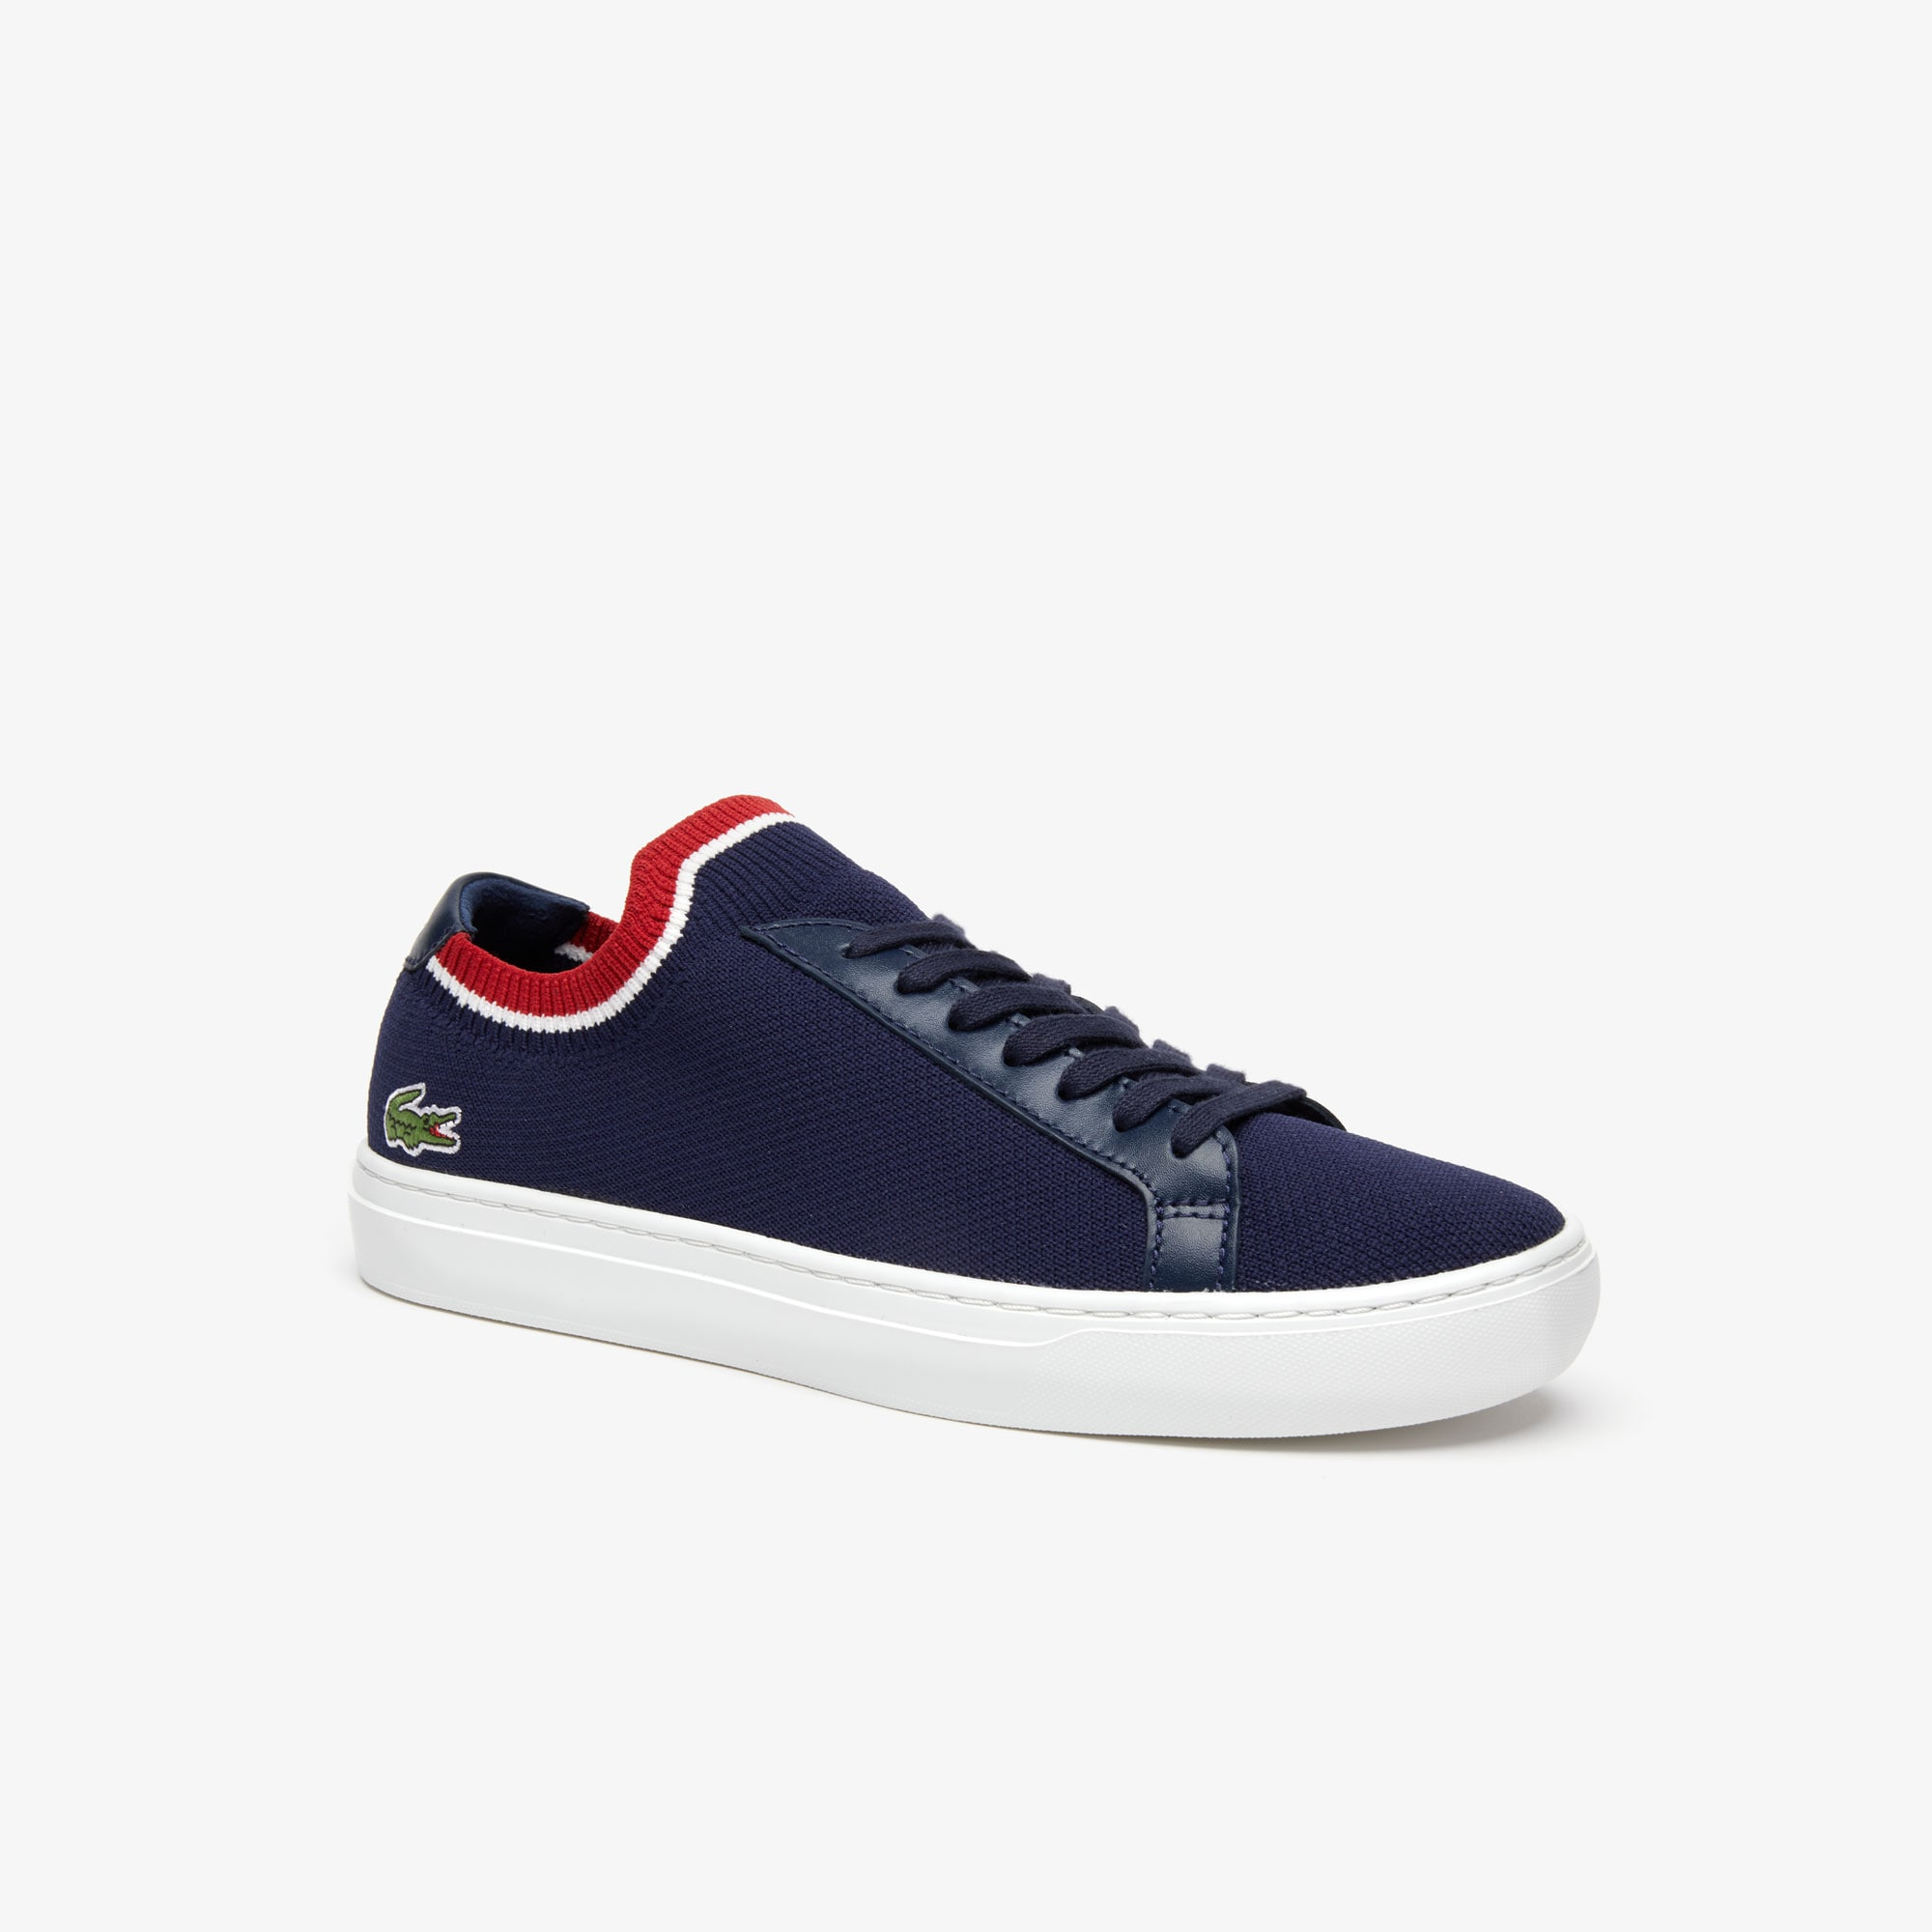 096d5f91878f Lacoste shoes for men  Sneakers